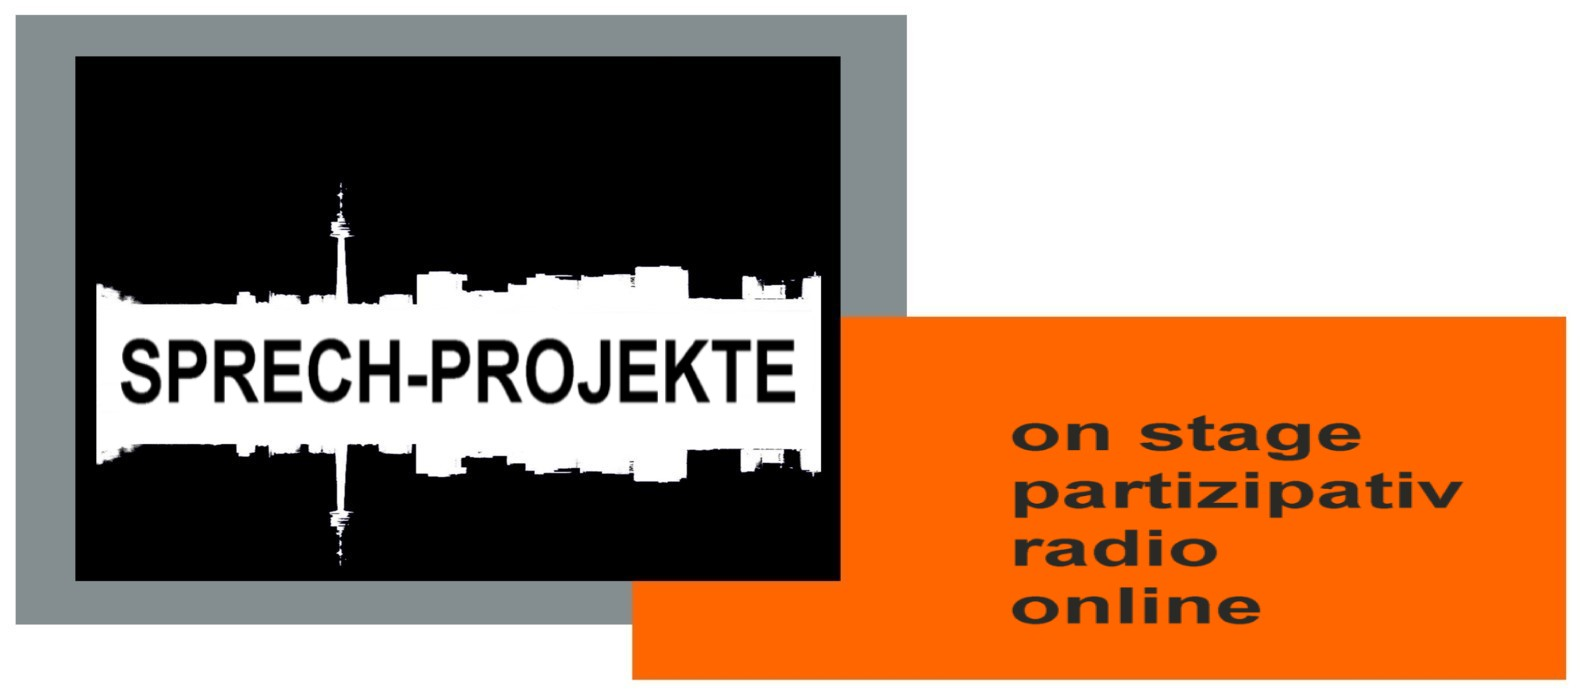 SPRECH_projekte / on stage, partizipativ, radio, online